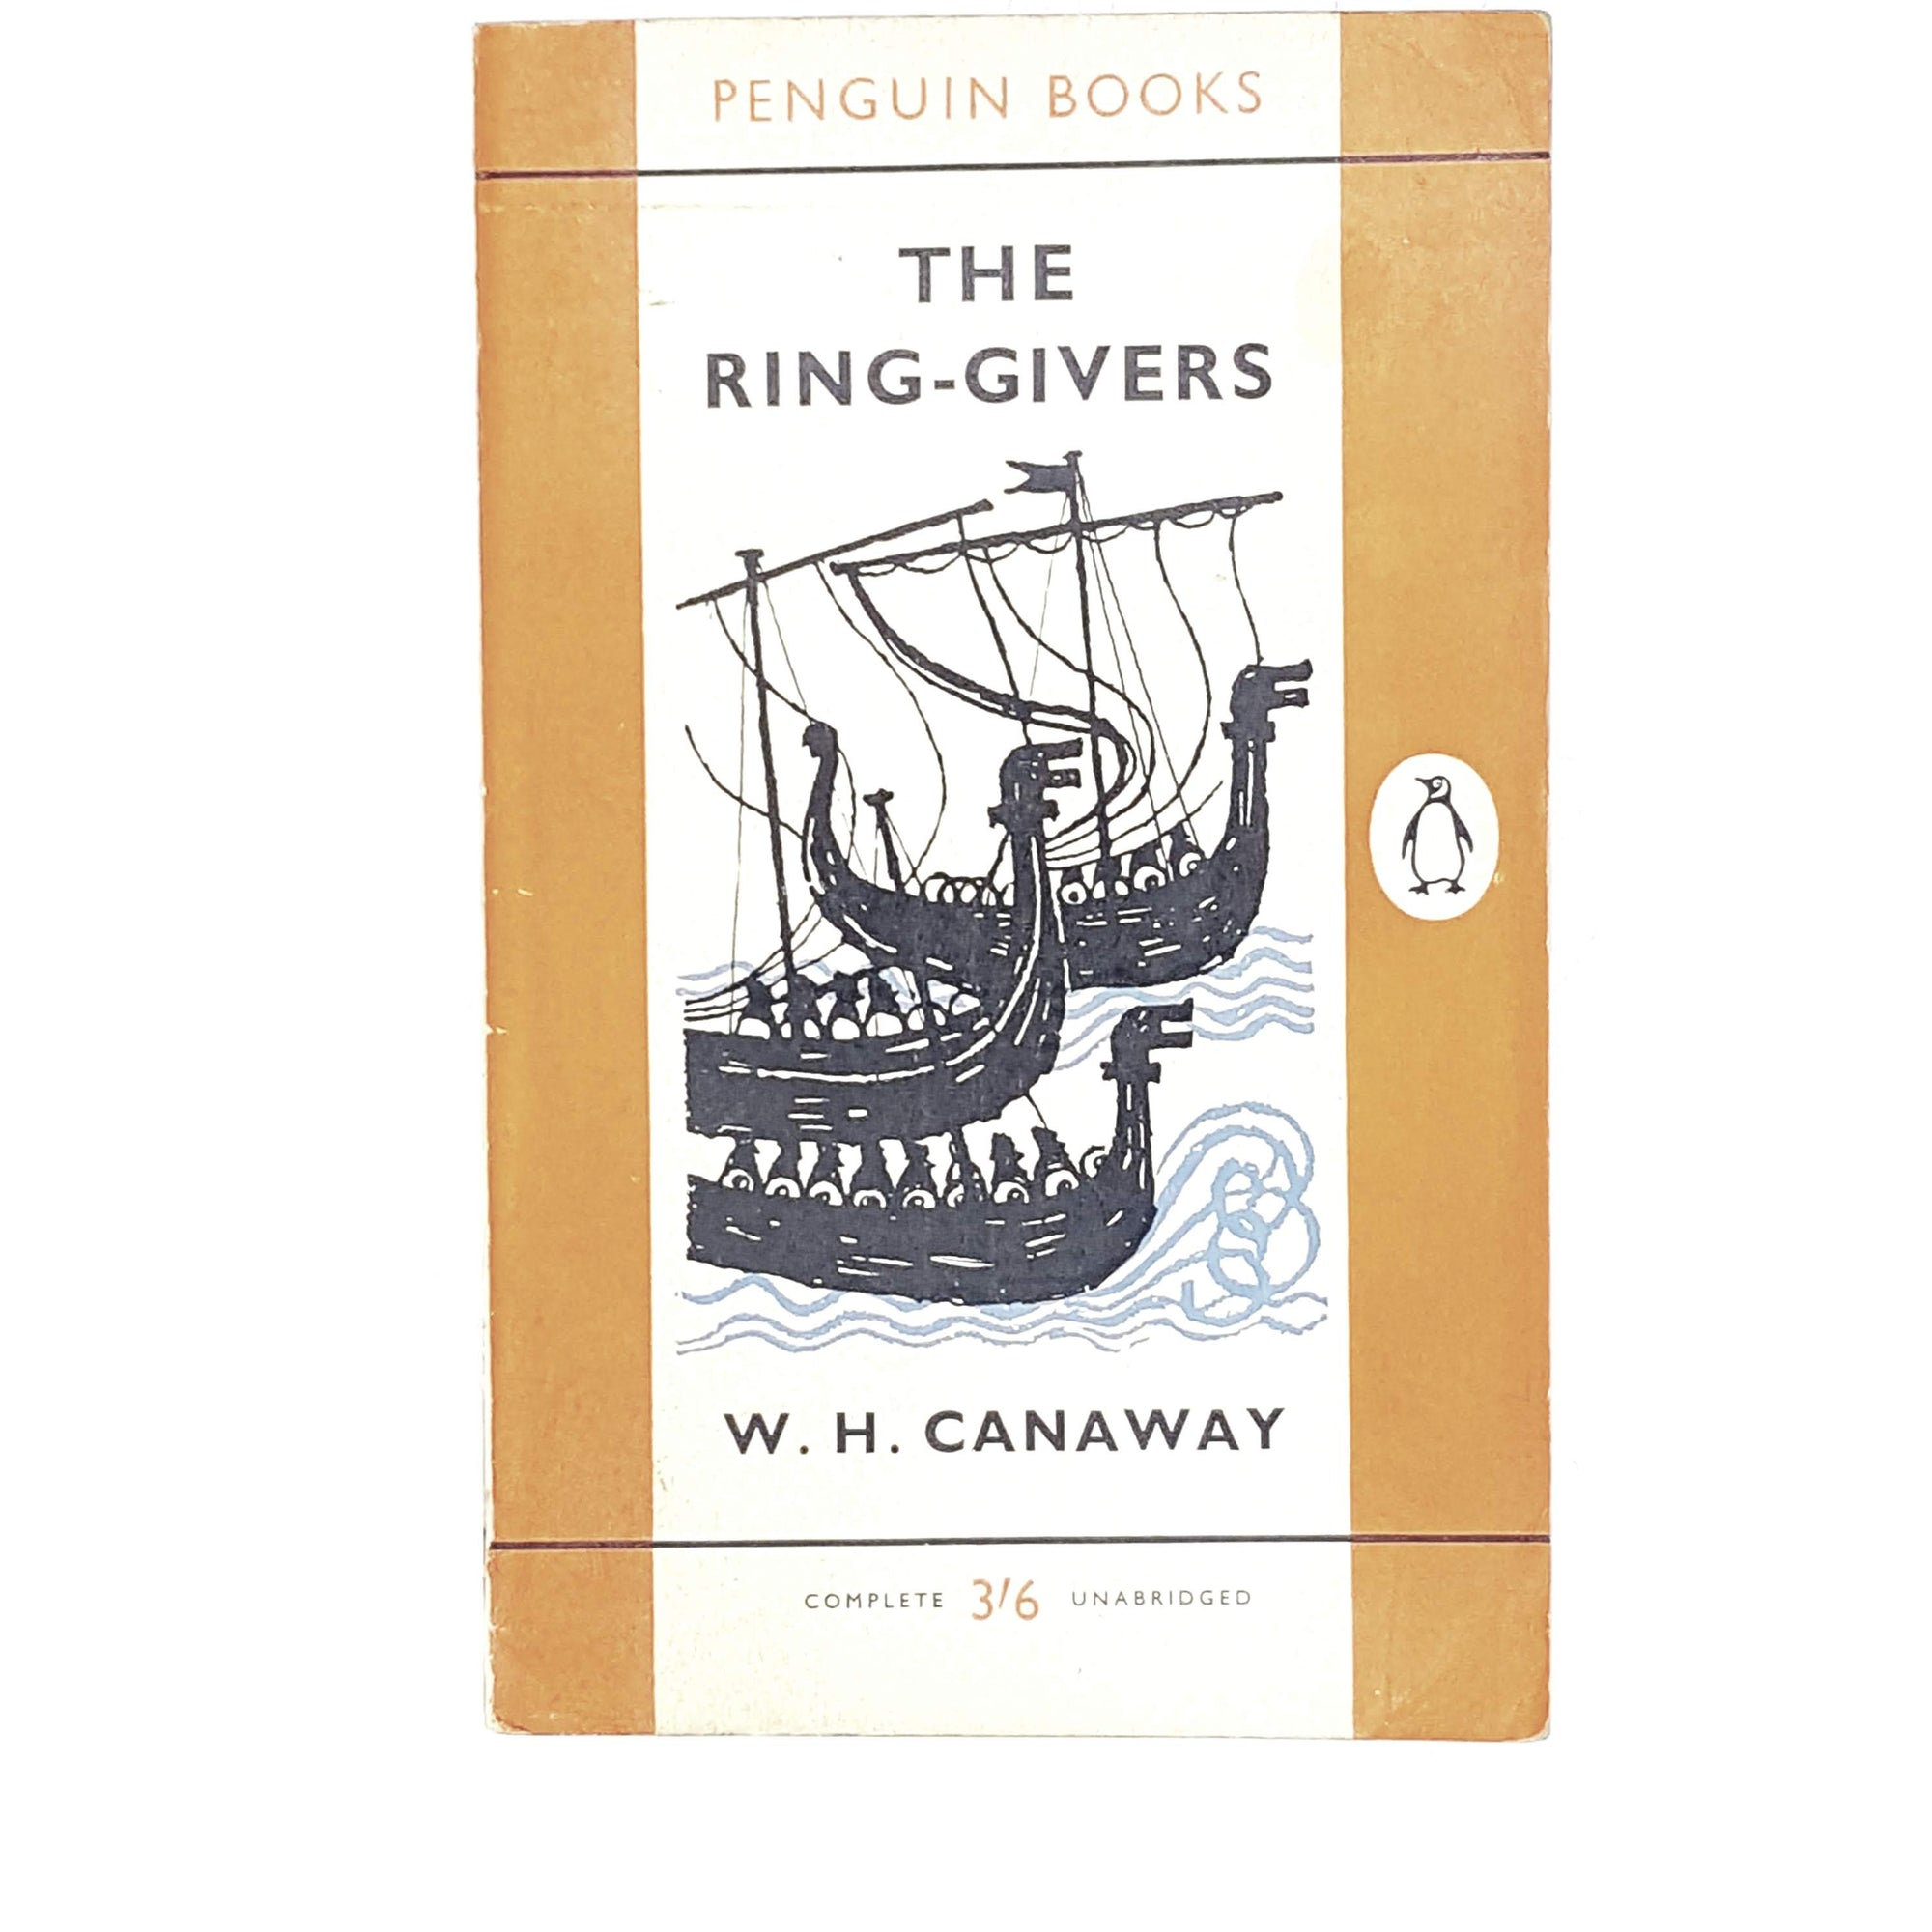 Vintage Penguin The Ring-Givers by W. H. Canaway 1961